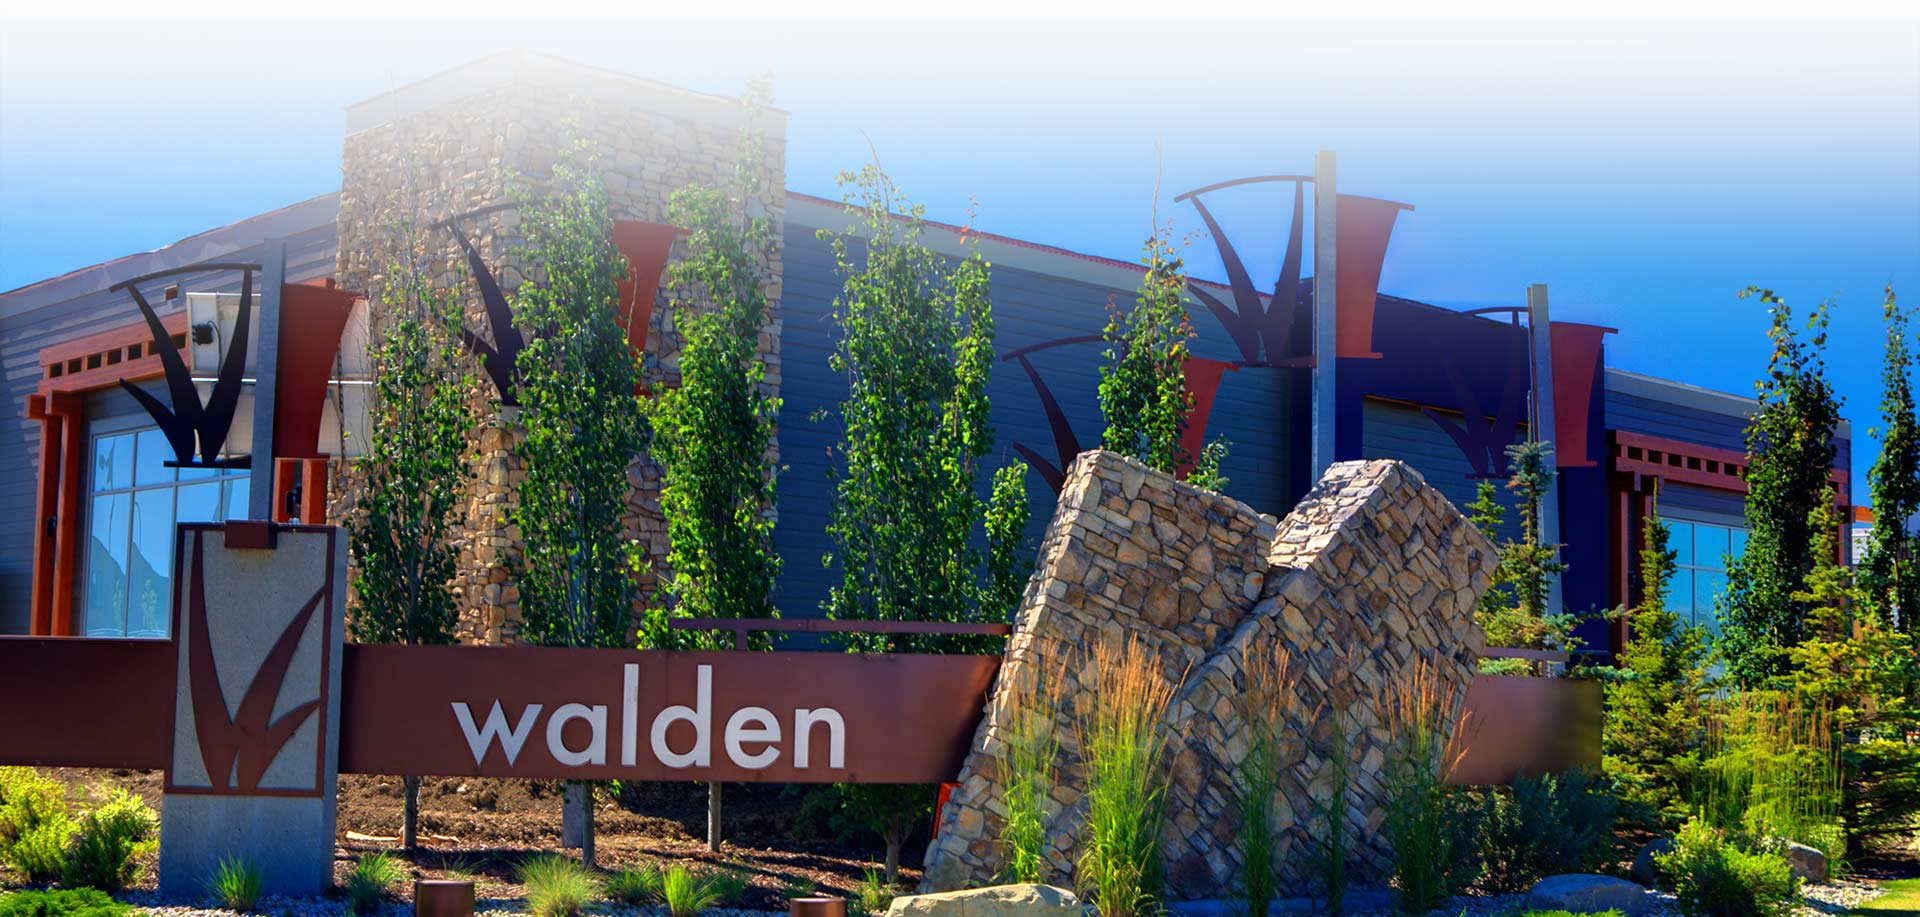 Walden Community Sign